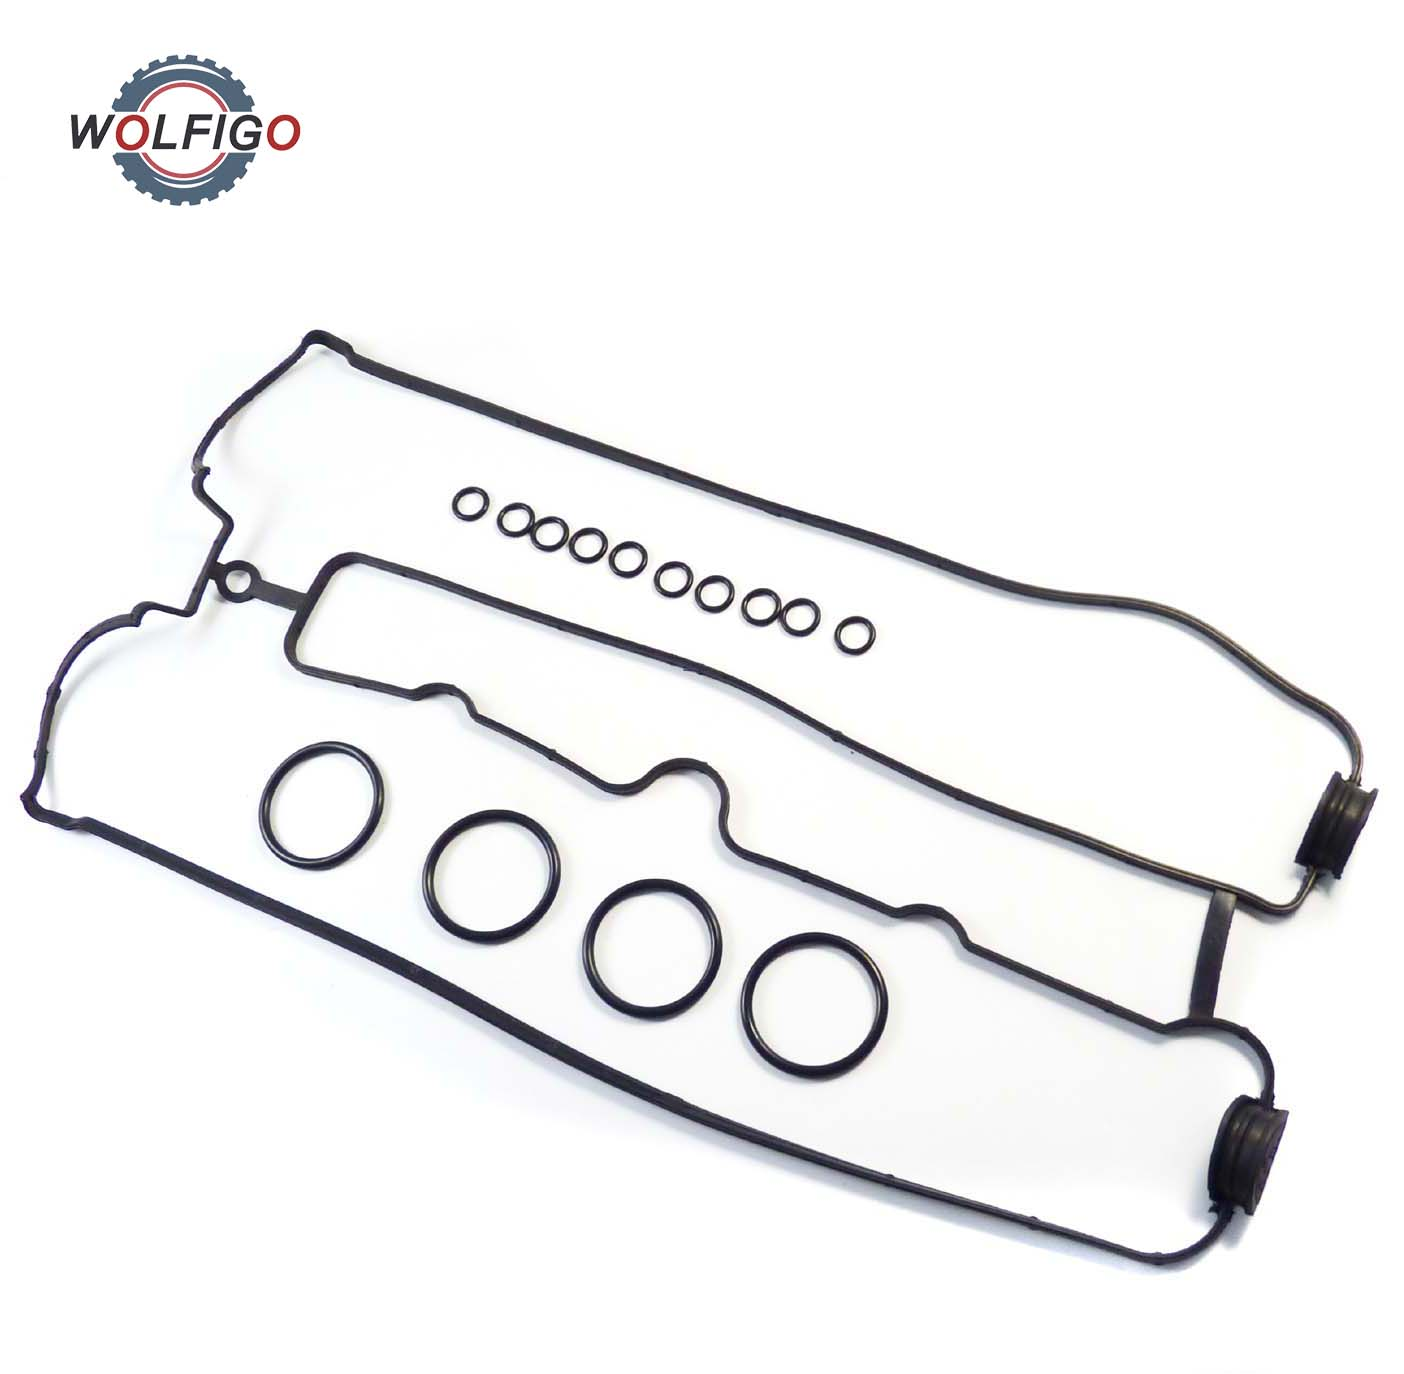 Wolfigo Engine Valve Cover Gasket Set Vs R